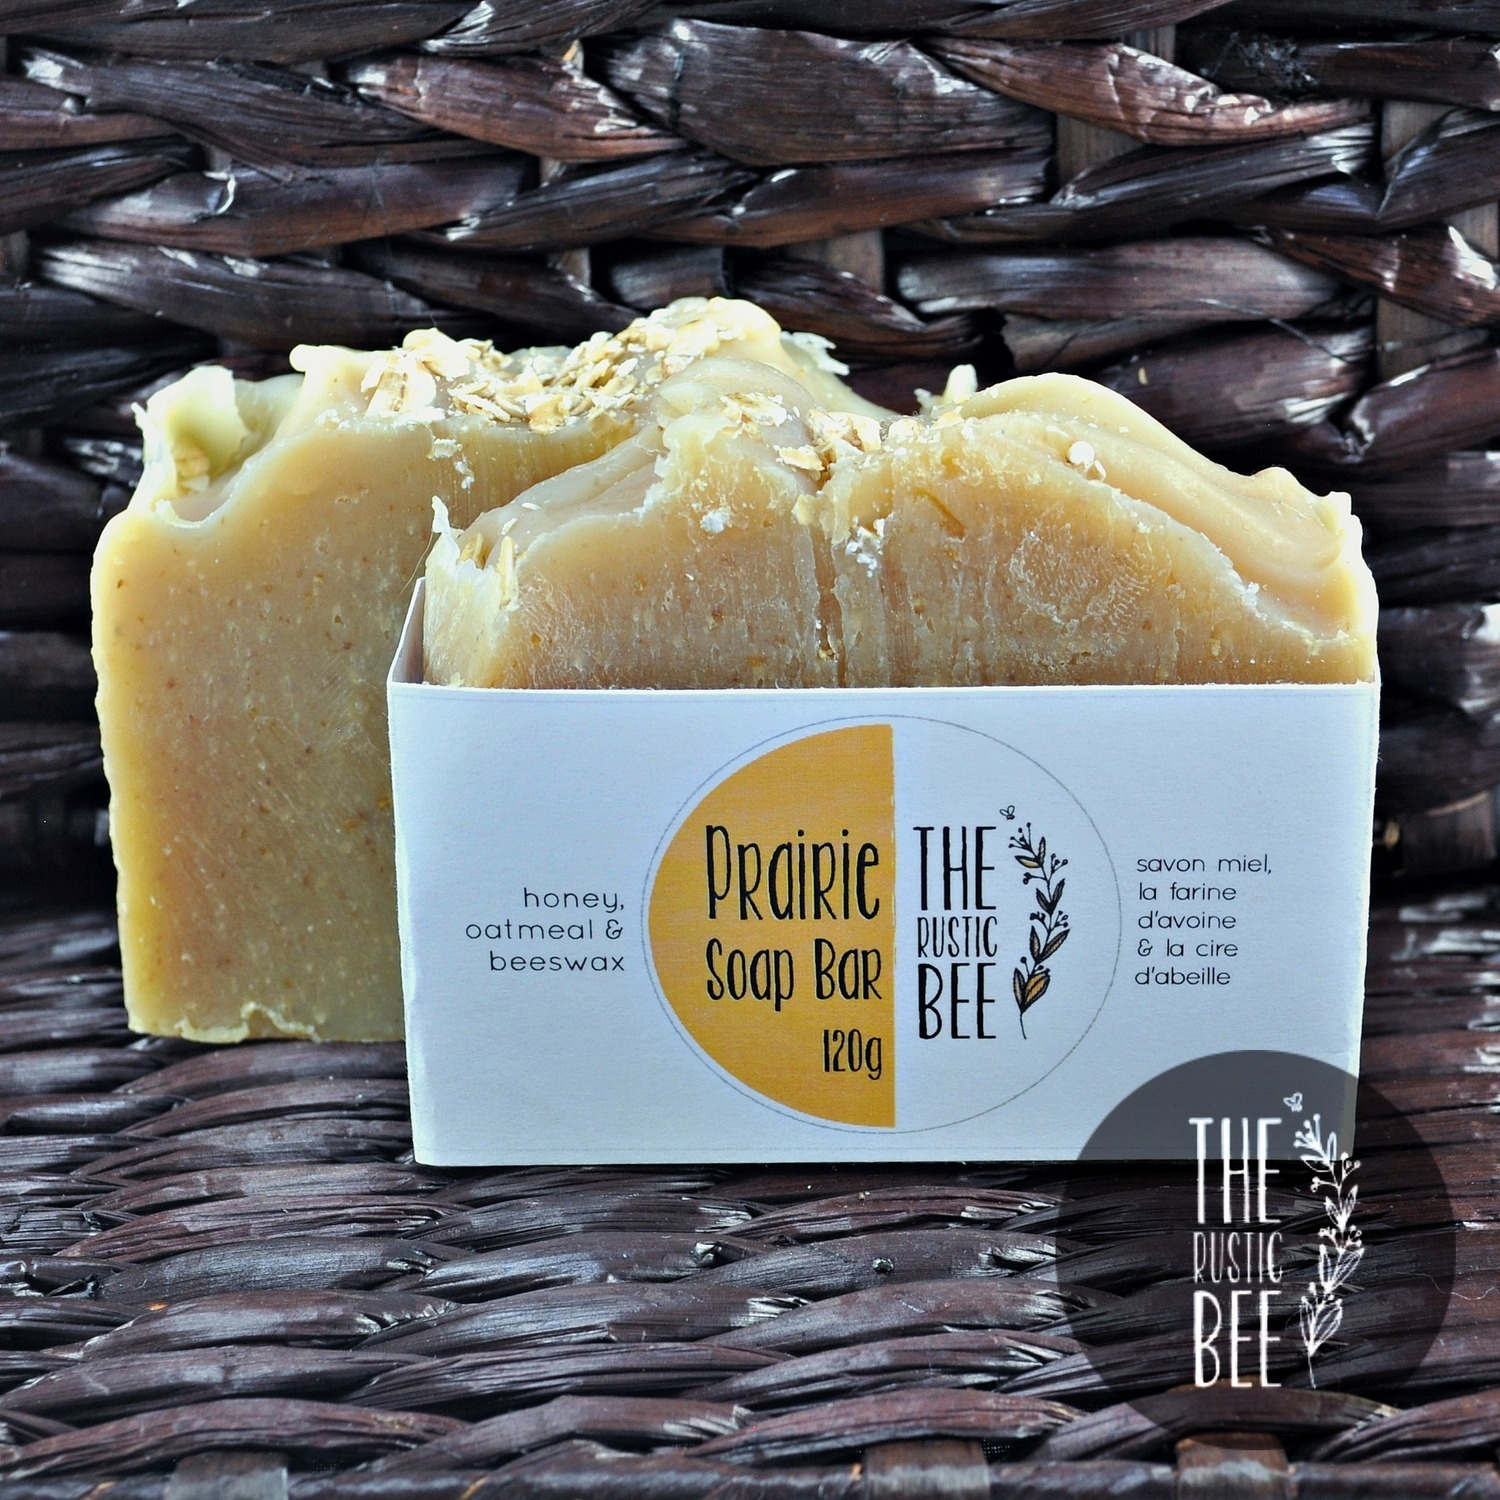 Prairie Handmade Soap (Oatmeal, Beeswax and Honey) 120g